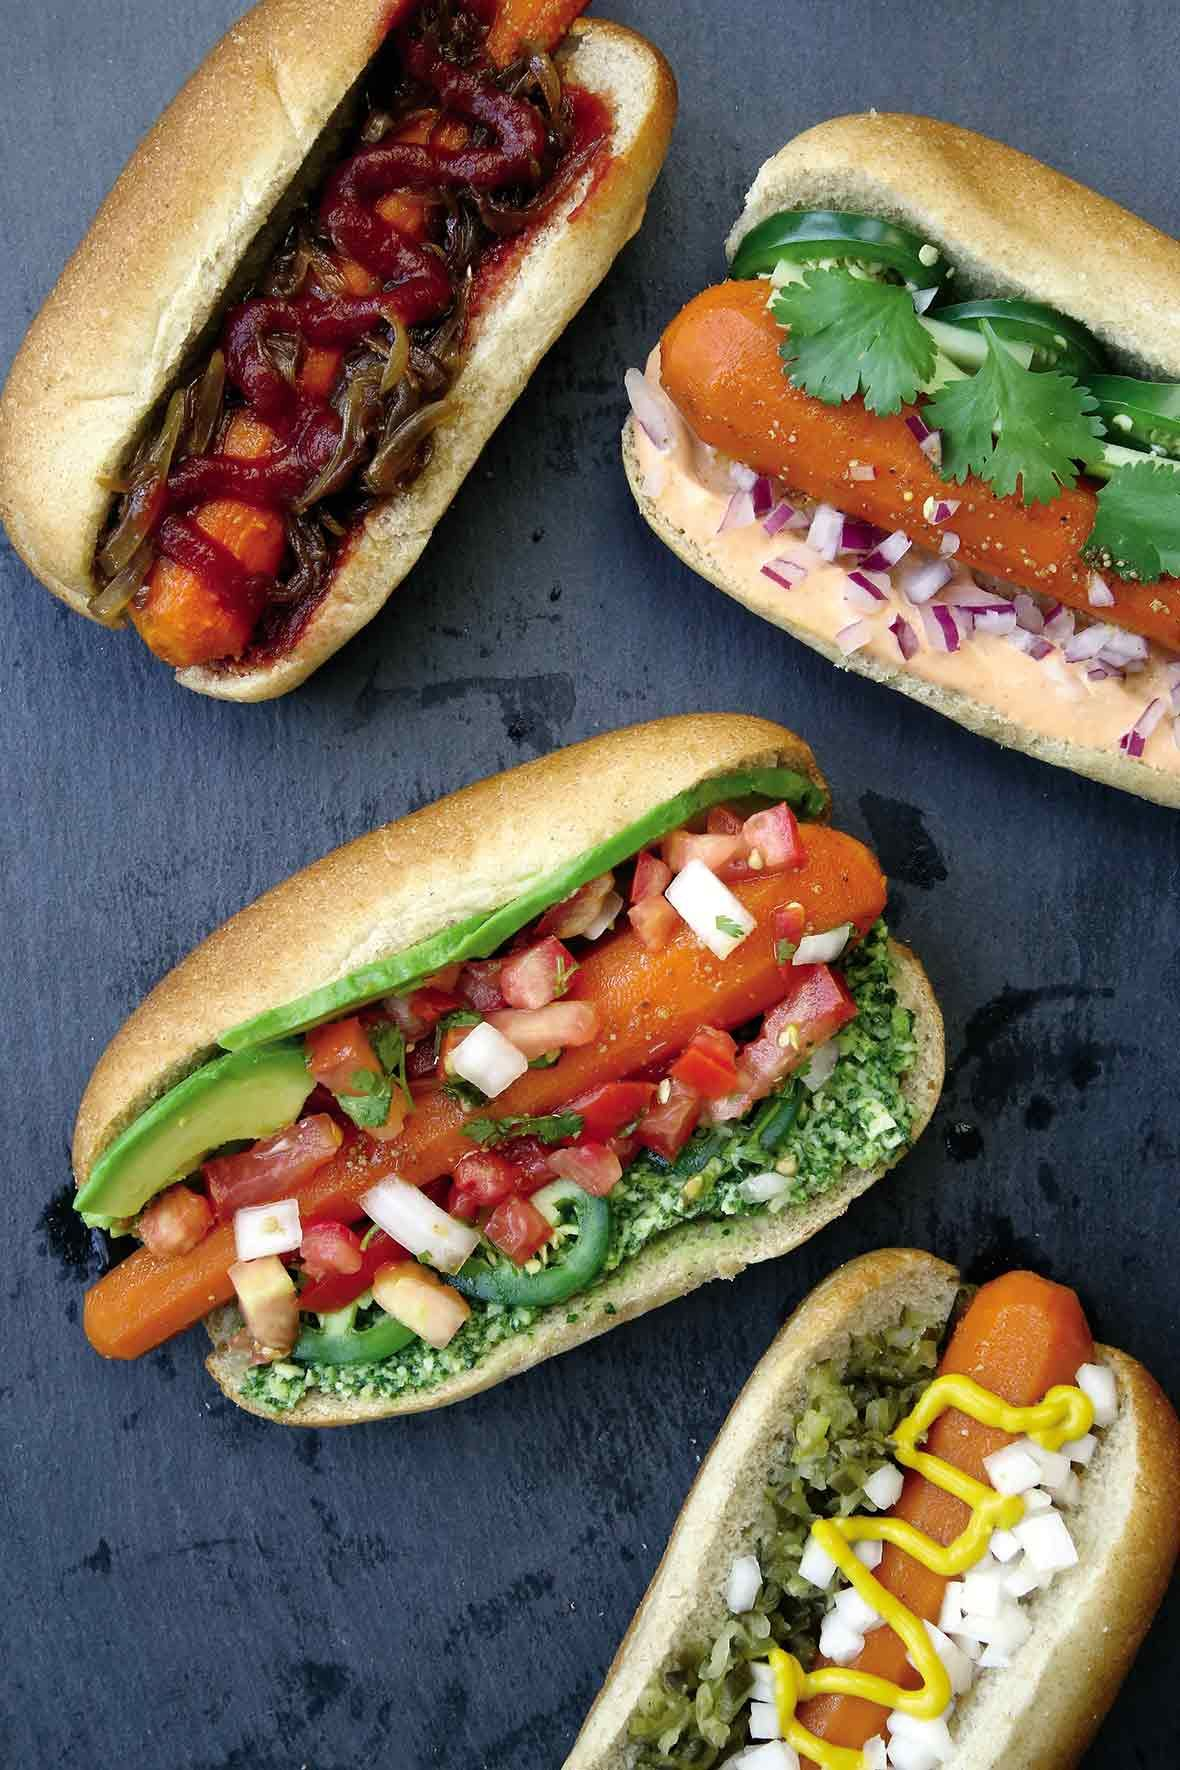 die besten 25 vegan hot dogs ideen auf pinterest vegetarische hot dogs vegane rezepte und. Black Bedroom Furniture Sets. Home Design Ideas